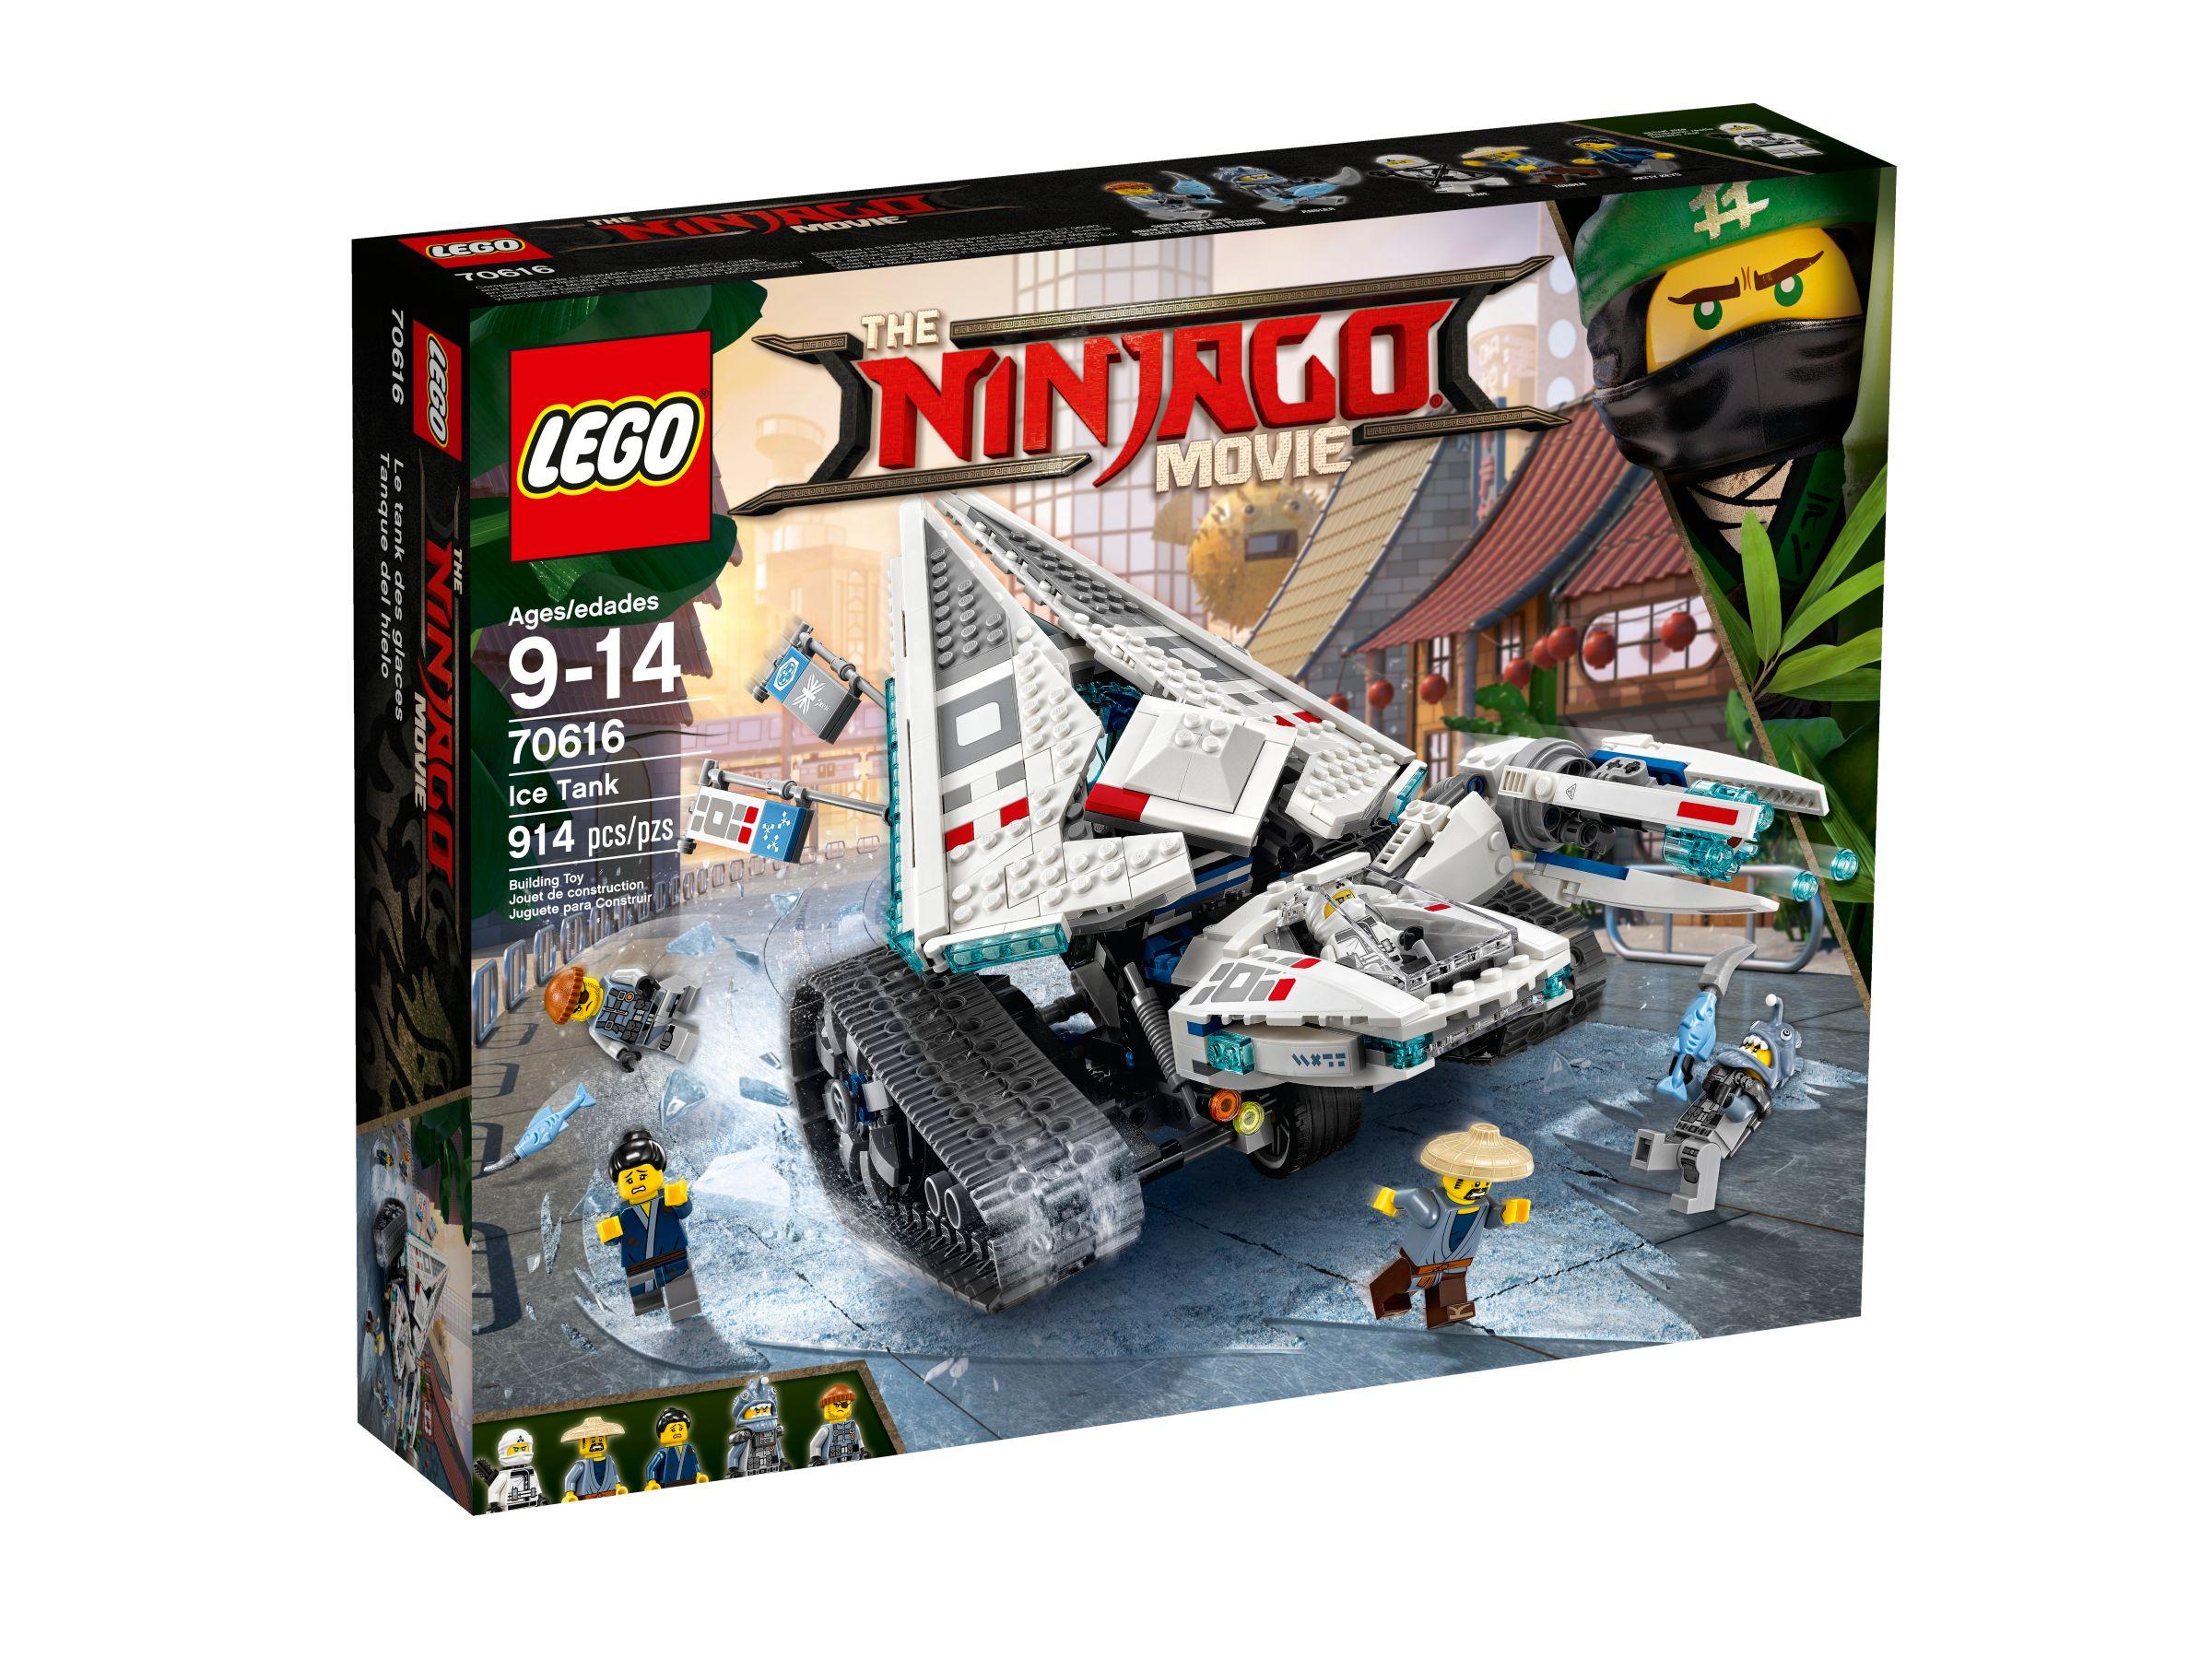 LEGO The LEGO Ninjago Movie 70616 Zane's Eis-Raupe LEGO_70616_alt1.jpg